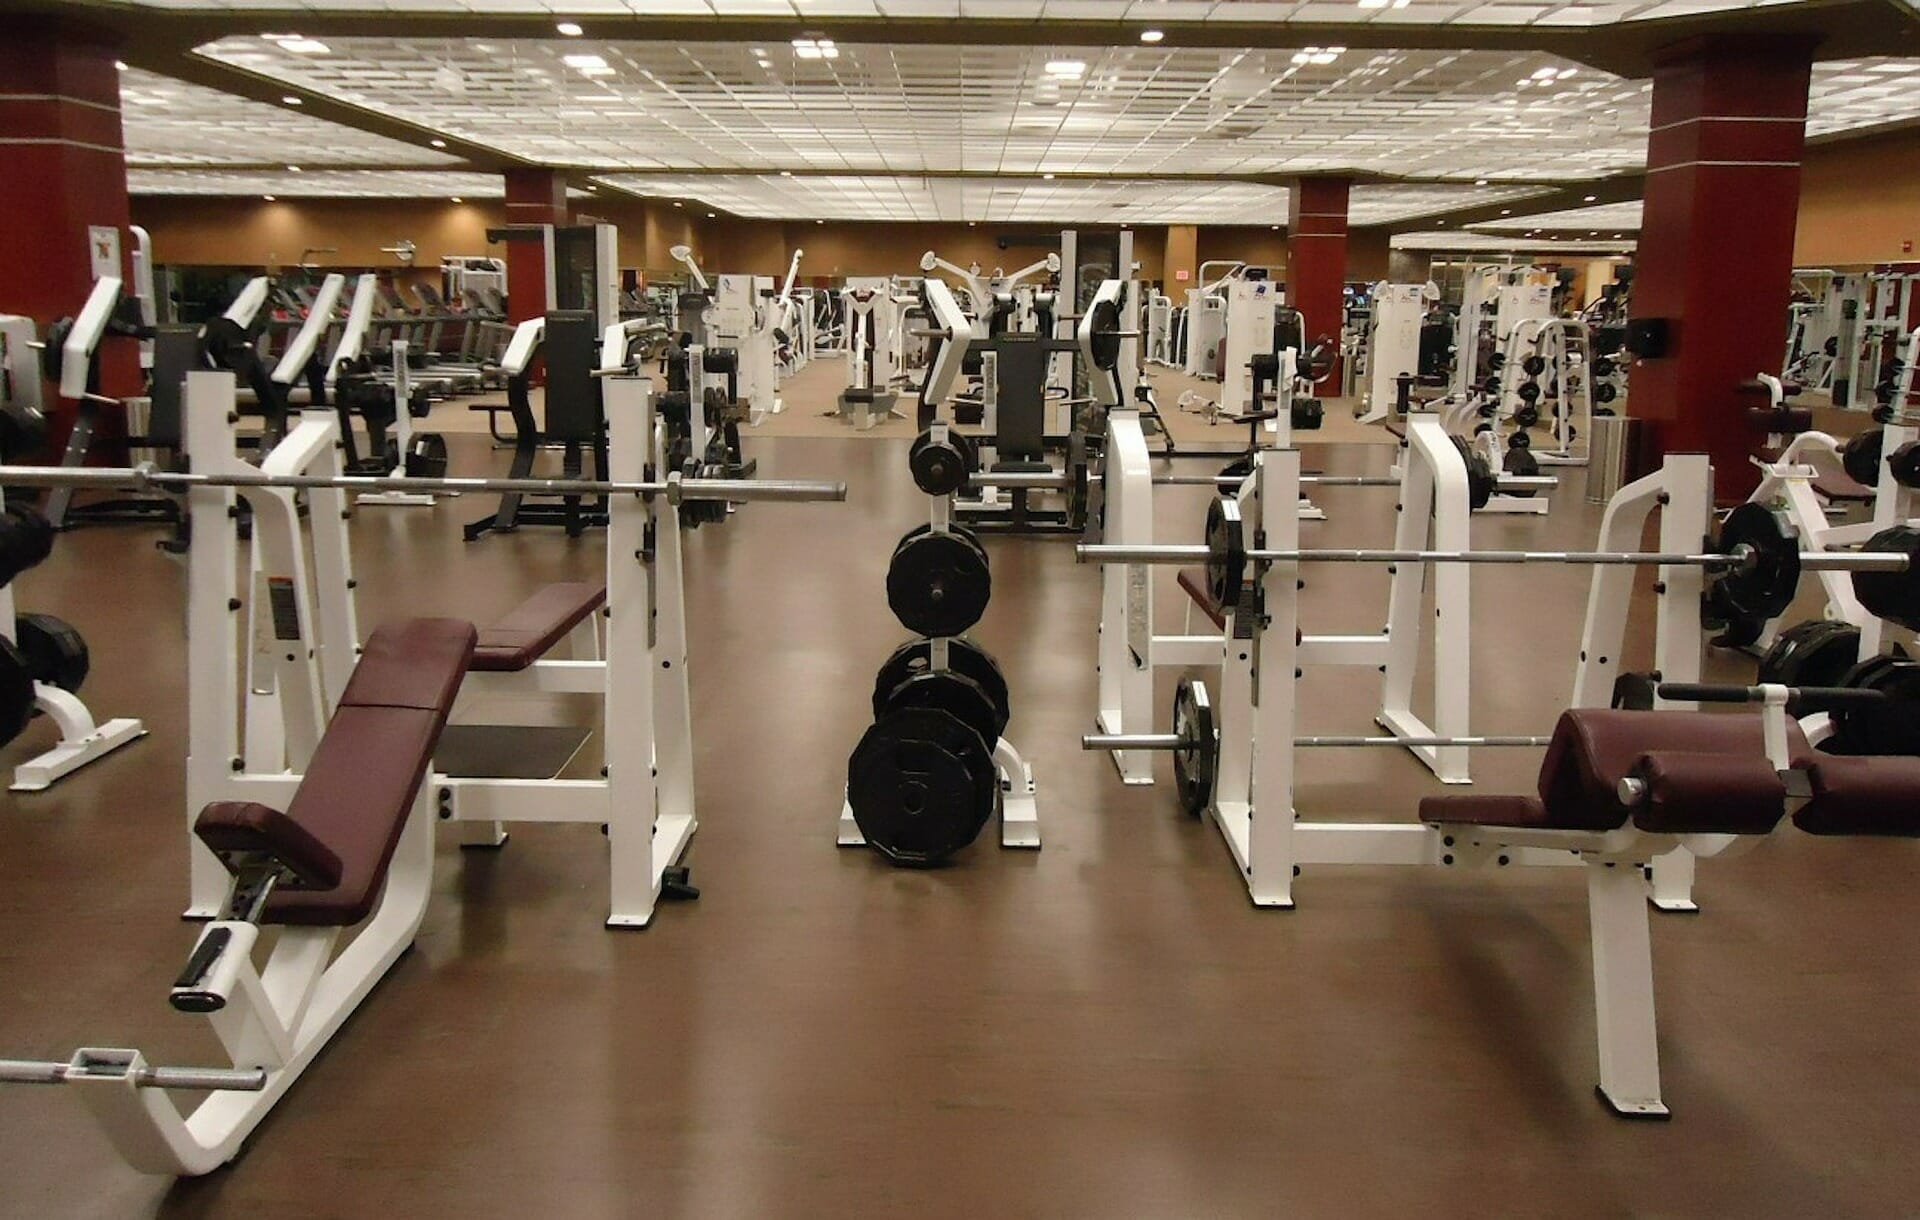 What is the minimum comfortable distance in the gym? fitness 19 gyms